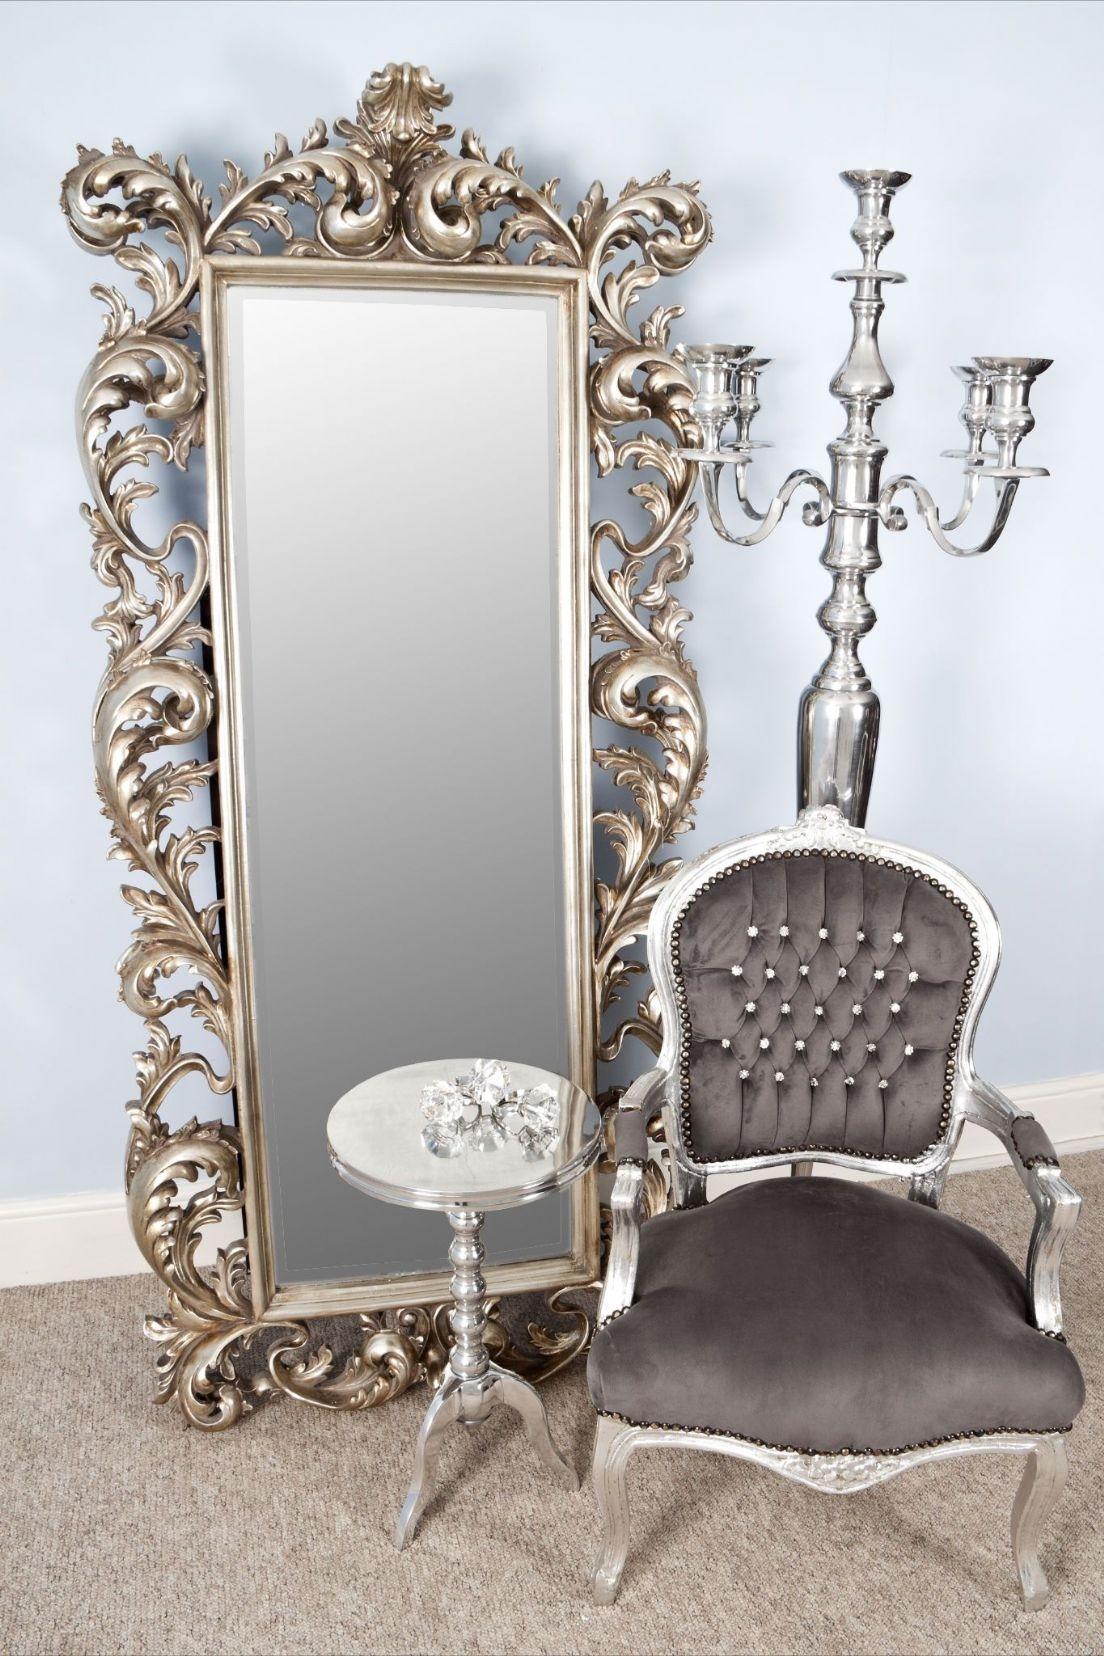 Bedroom Furniture Table Mirror Square Mirror Wood Framed Mirrors Inside Large White Rococo Mirror (Image 3 of 15)